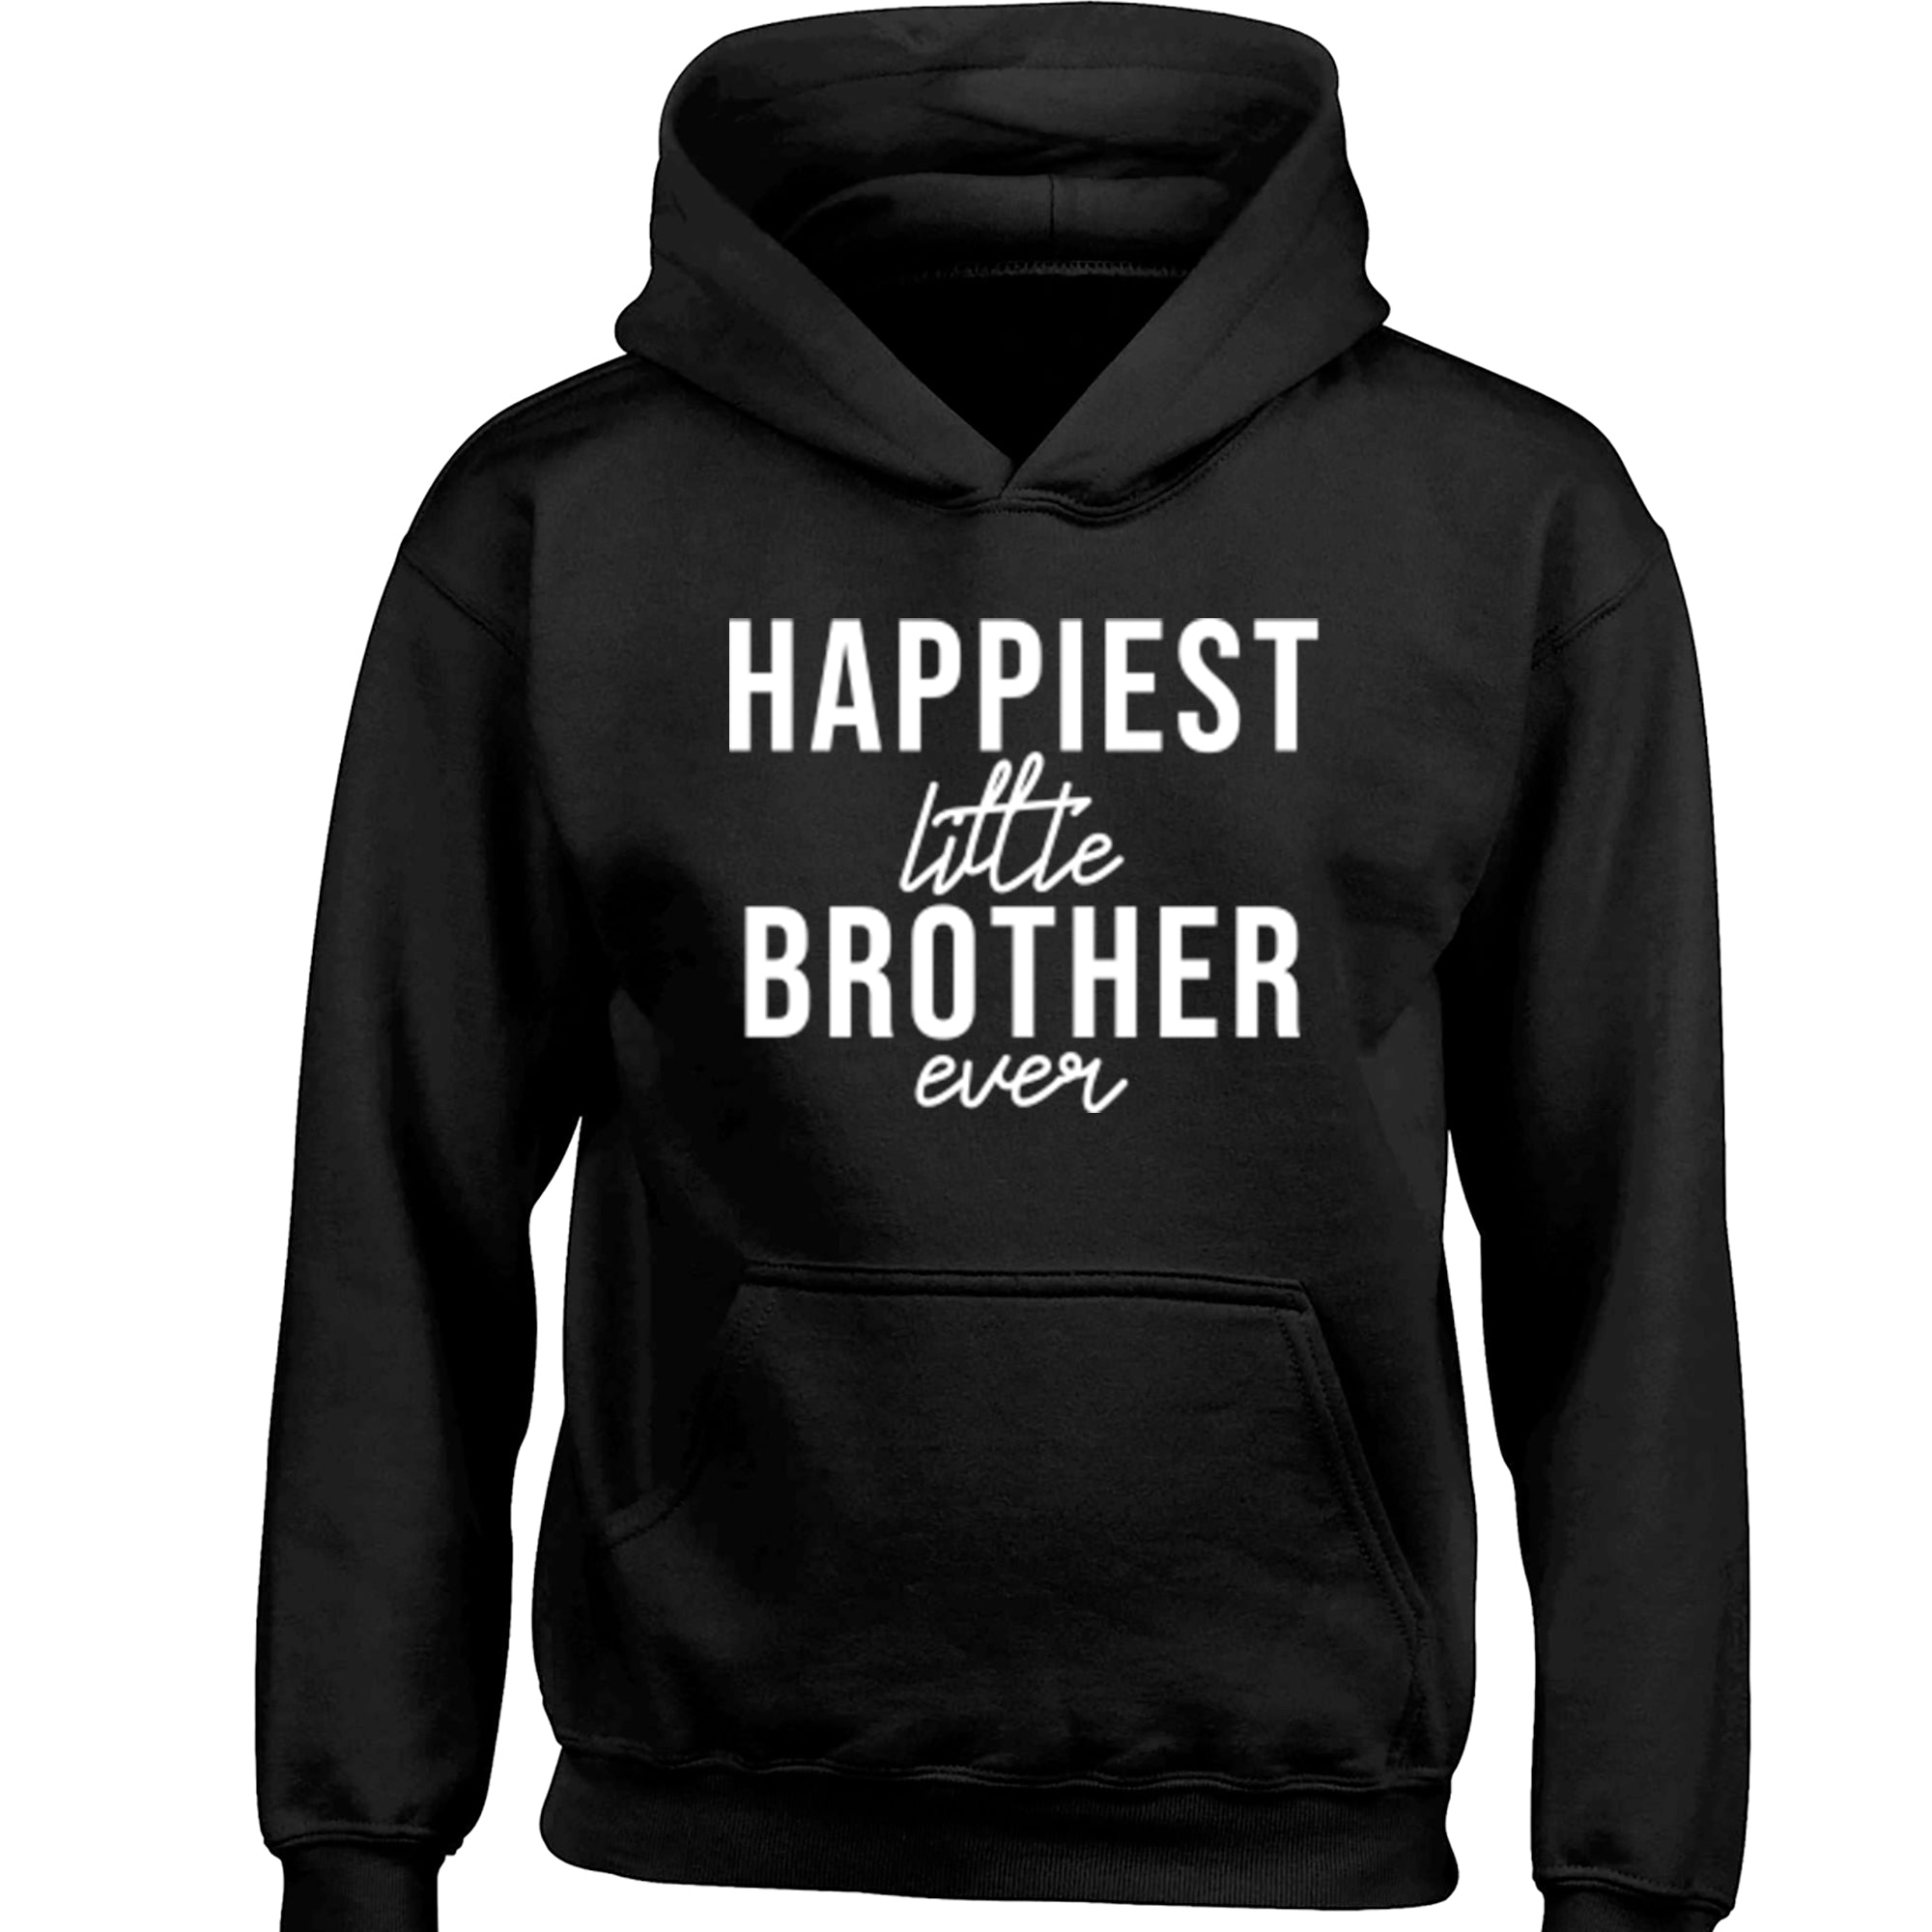 Happiest Little Brother Ever Childrens Ages 3/4-12/14 Unisex Hoodie S0521 - Illustrated Identity Ltd.